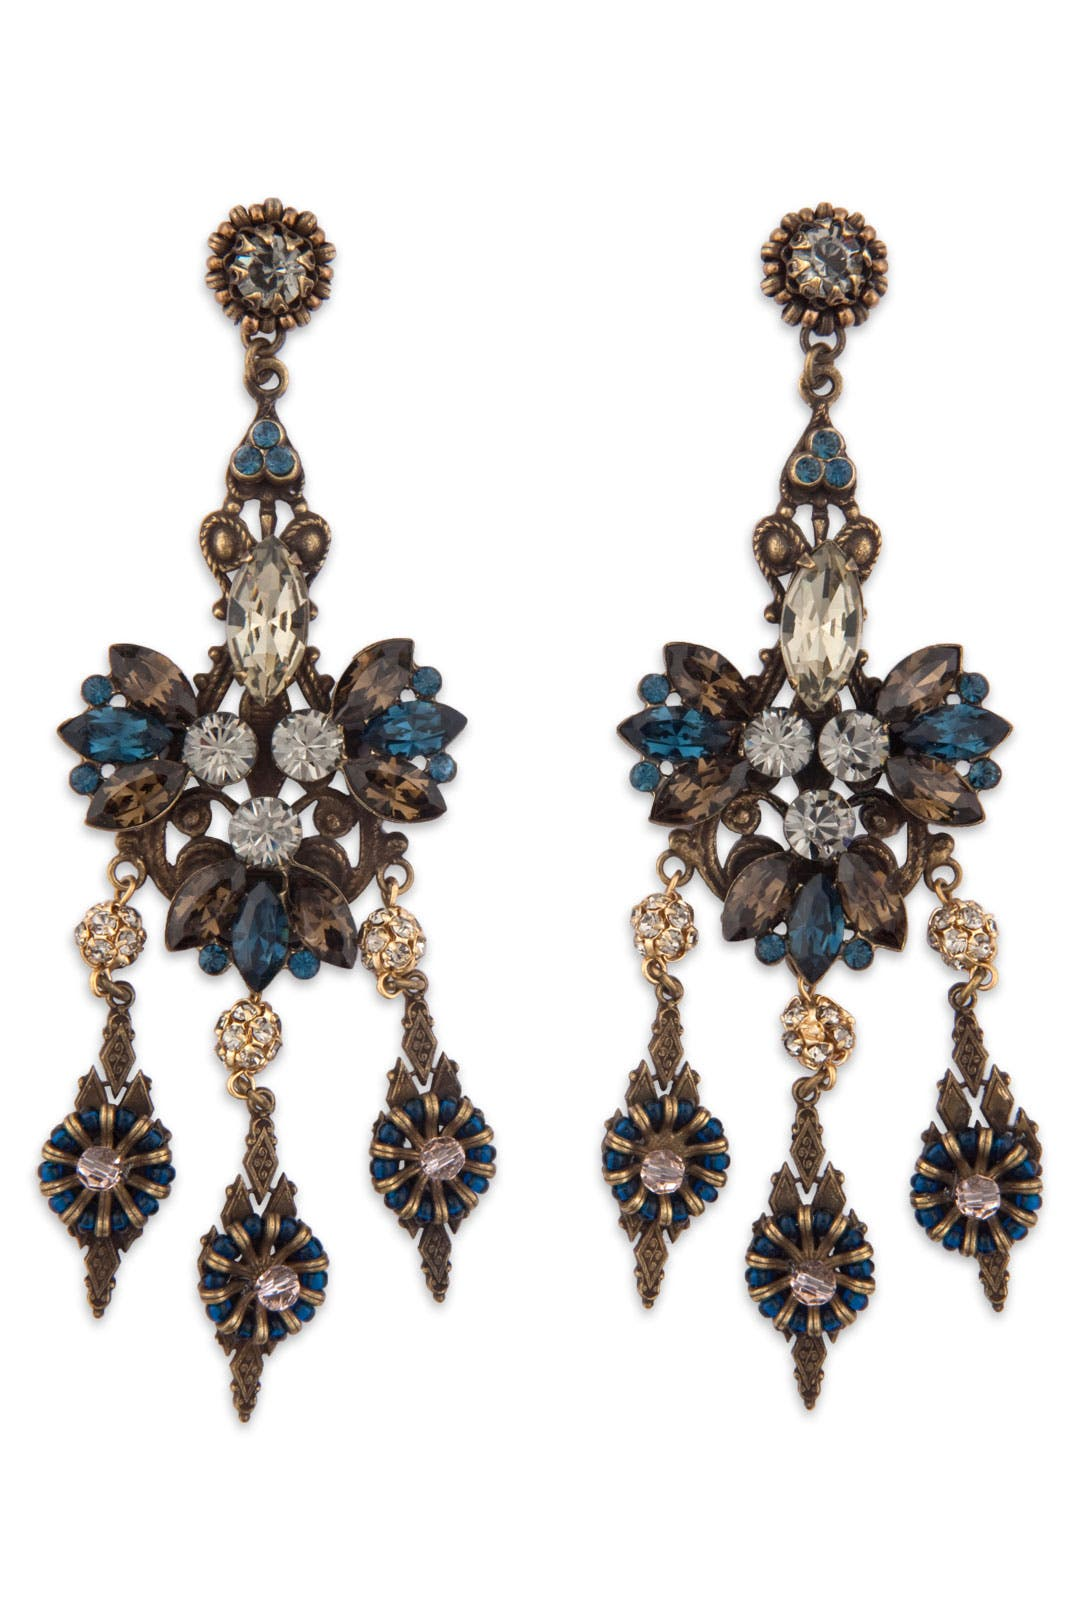 Antique Sapphire Chandelier Earrings by Miriam Haskell